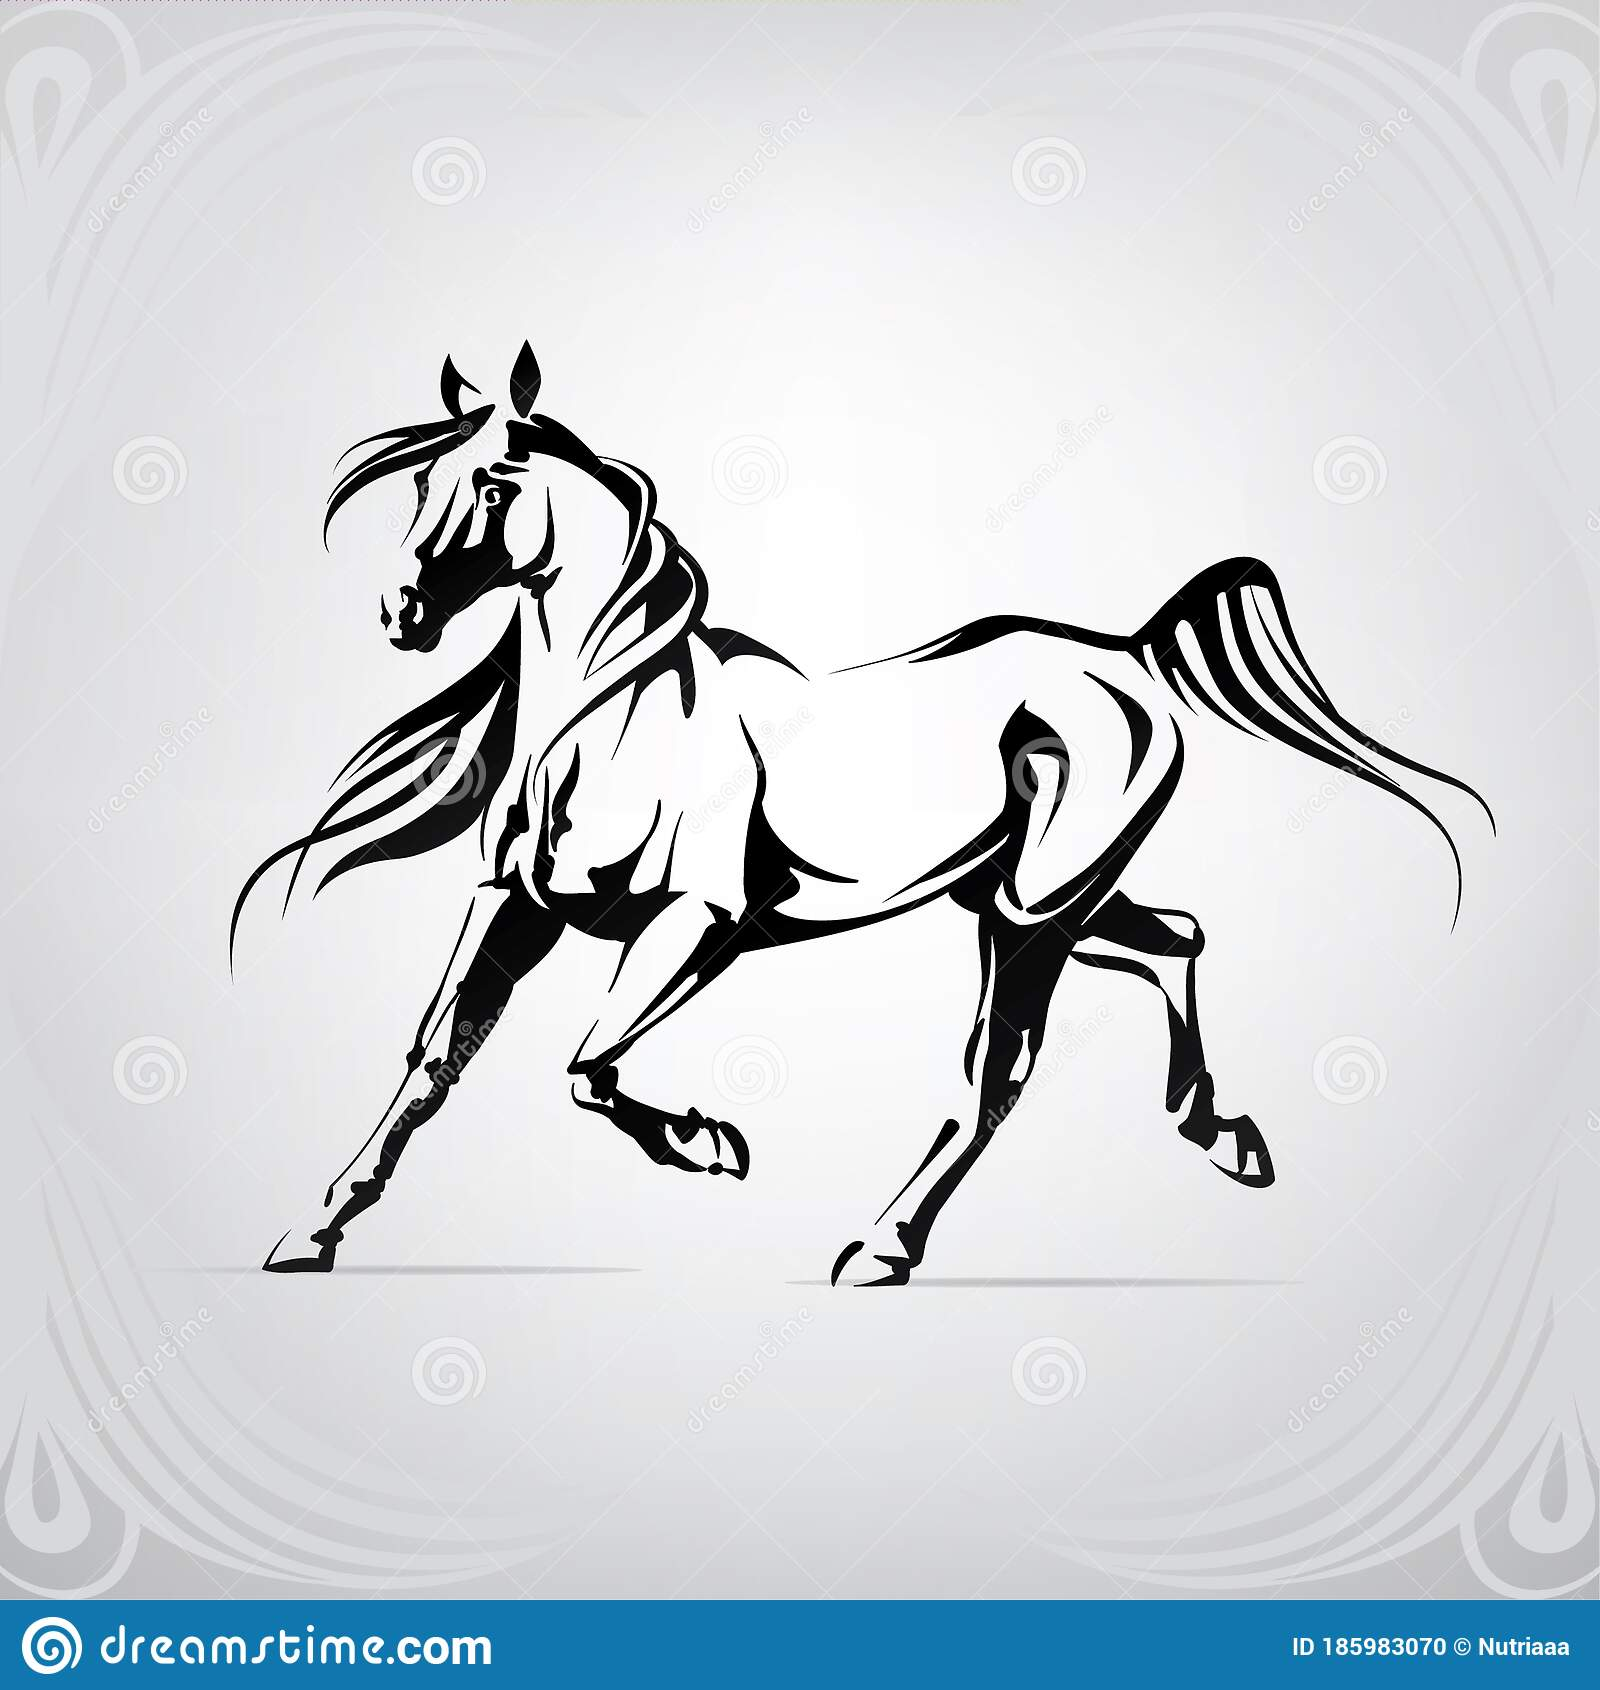 Silhouette Of The Running Horse Vector Illustration Stock Vector Illustration Of Design Wild 185983070